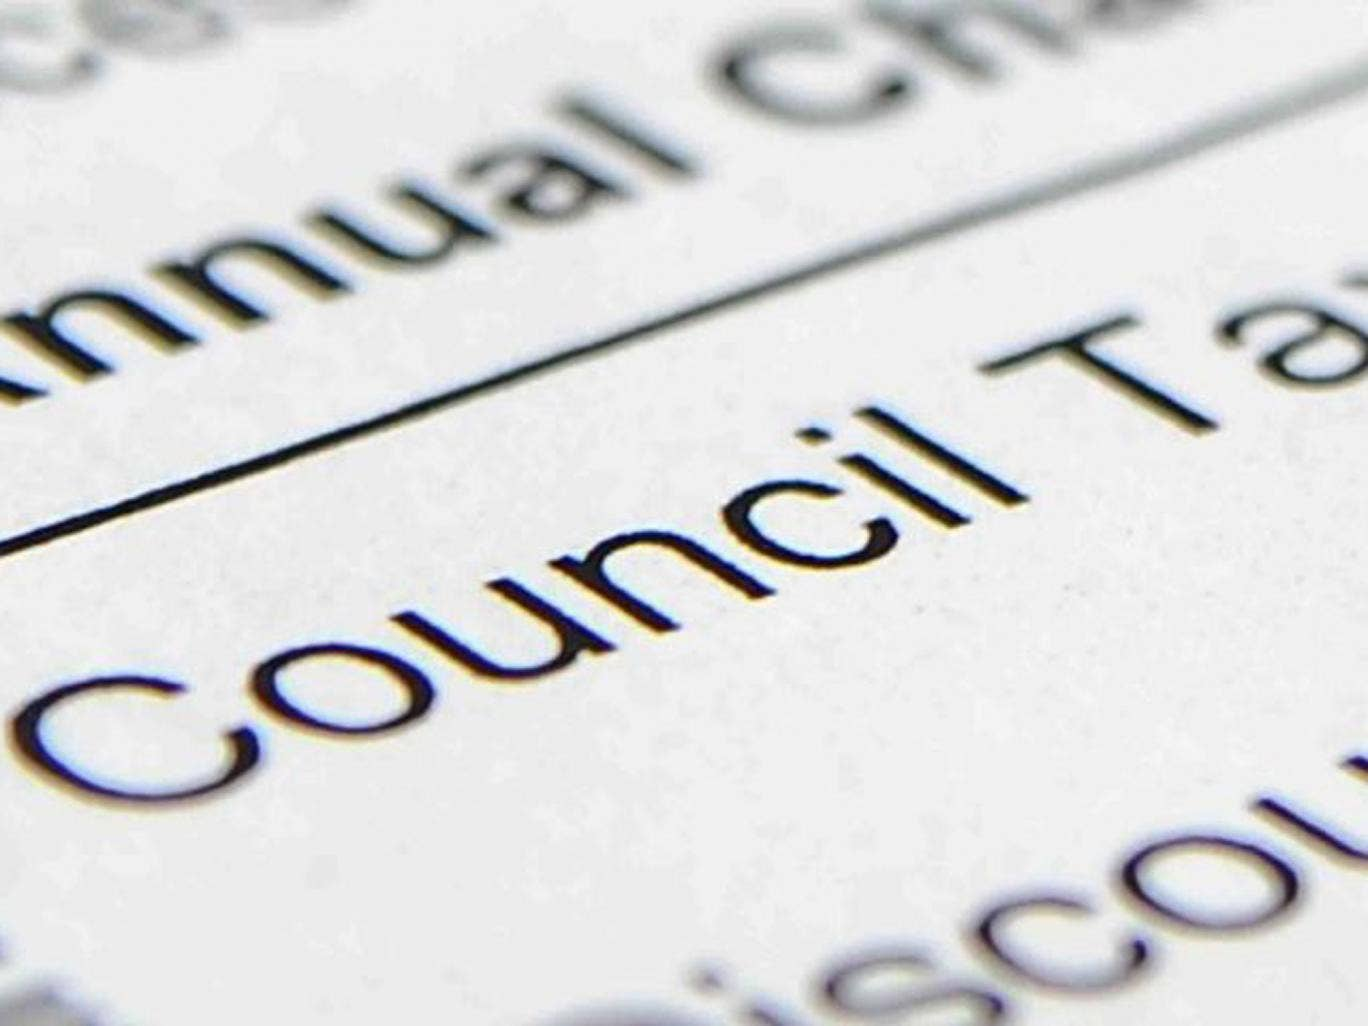 The number of people struggling with their council tax payments has 'rocketed' following the introduction of the Government's welfare reforms, figures from Citizens Advice show